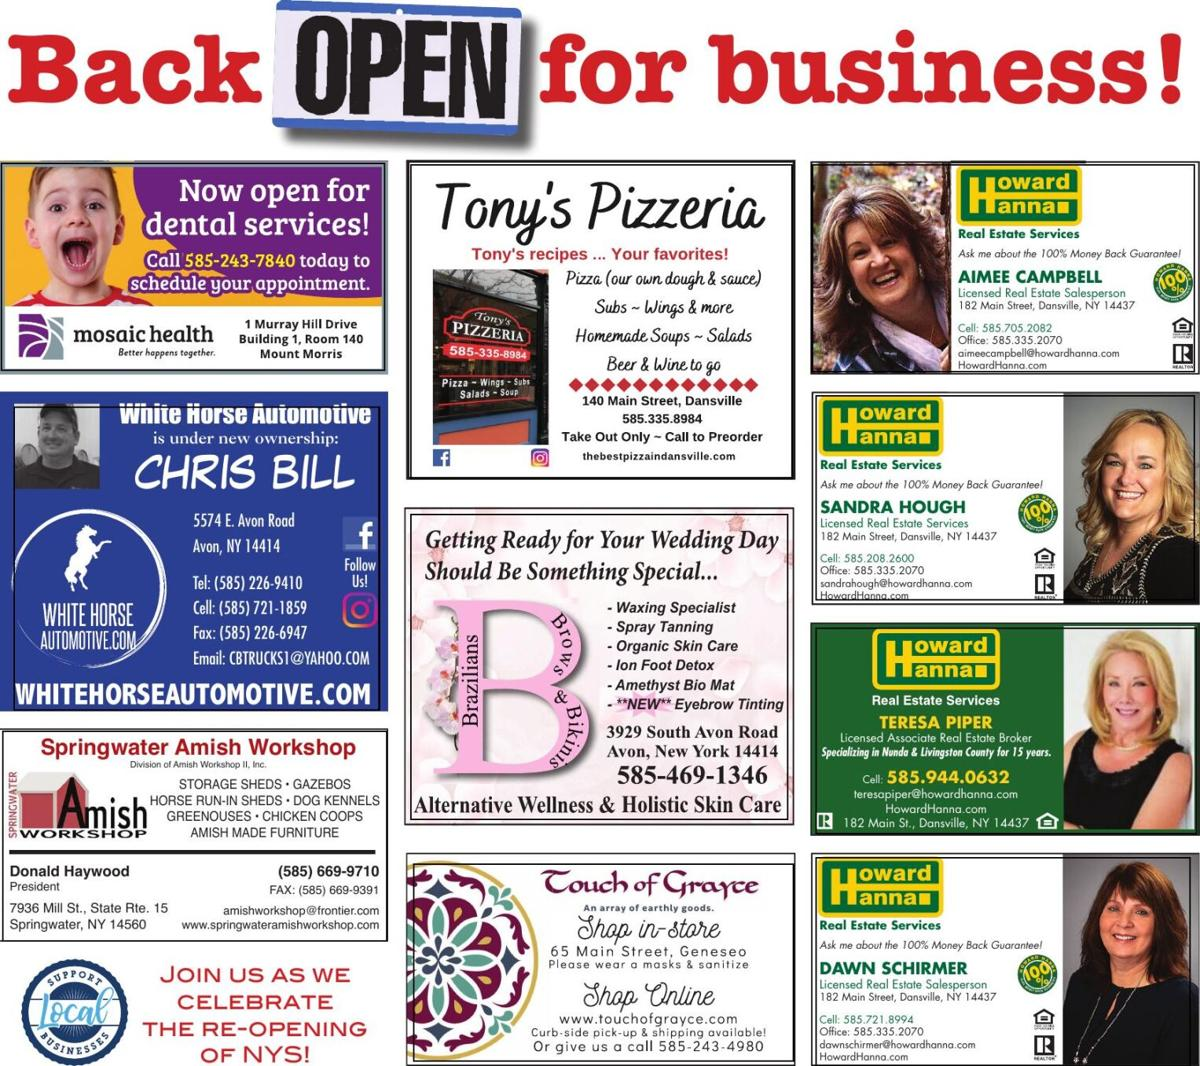 COVID-19 — Back open for business